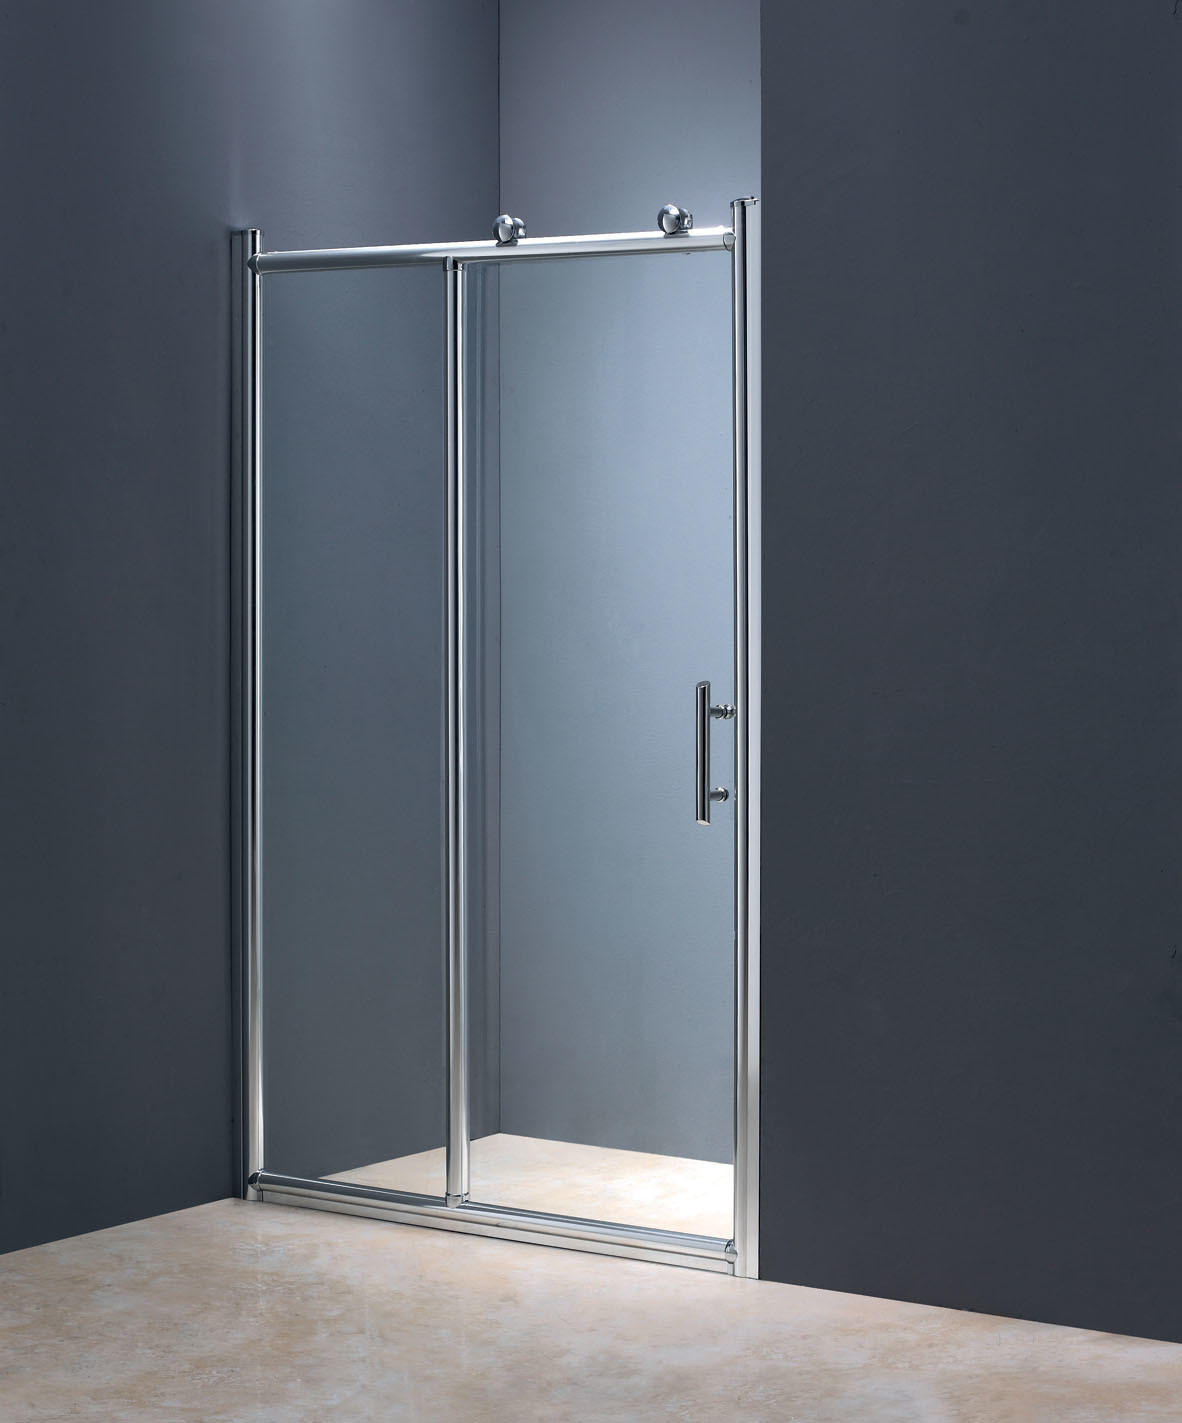 China Big Wheel Sliding Shower Door Y P1007a China Shower Door Shower Screen